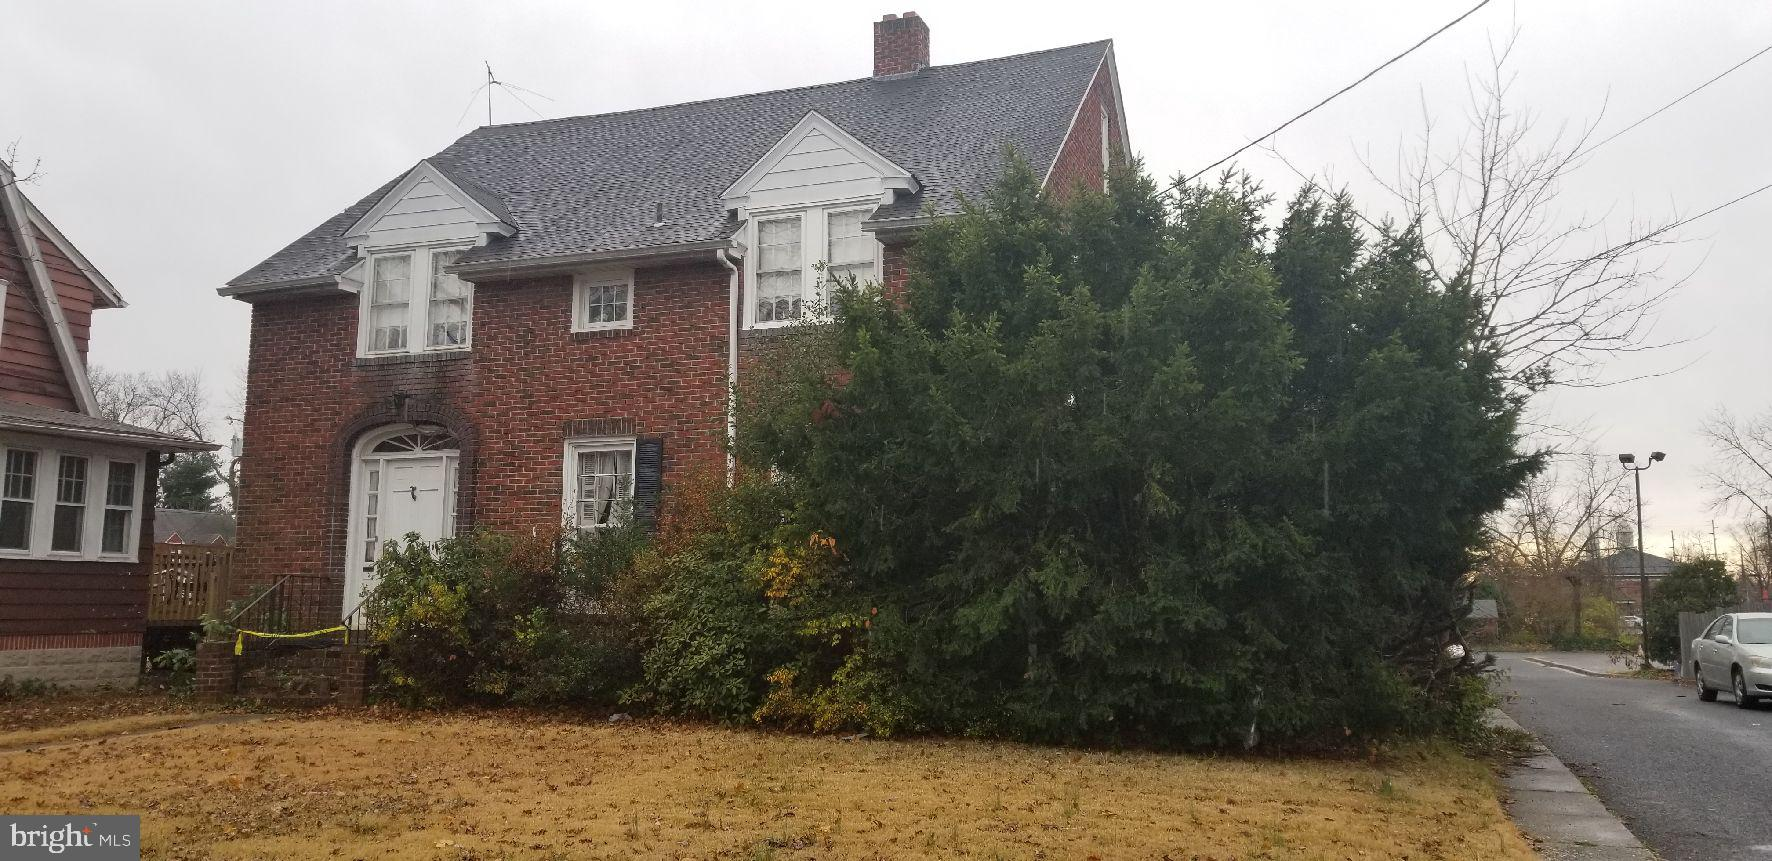 """Great Bones Here - Turn this brick home back into a beauty!!  Being Sold in """"As is"""" condition, looking for a potential gem?  4 Bdrm, 2 1/2 bth, corner location, 2 car garage, Formal dining rm, breakfast rm, walk-up attic, sunroom, Deep basement, hardwood floors, ceramic floors, fireplace , lots of glass doors, Newer windows on sunporch.  Public water and Sewer."""